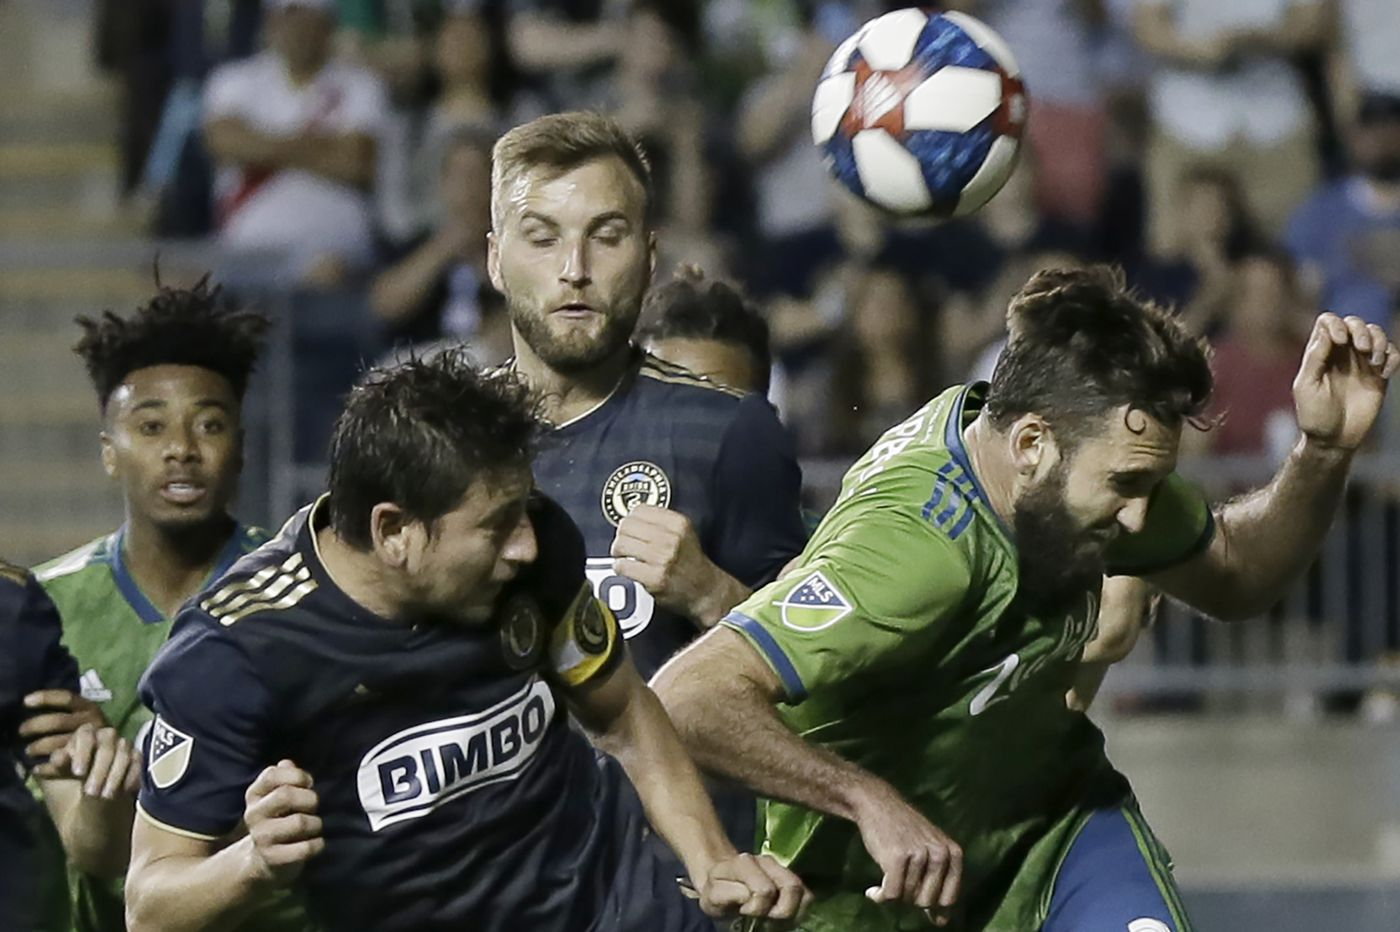 Sounders' defensive bunker against Union a compliment to Jim Curtin's improved team